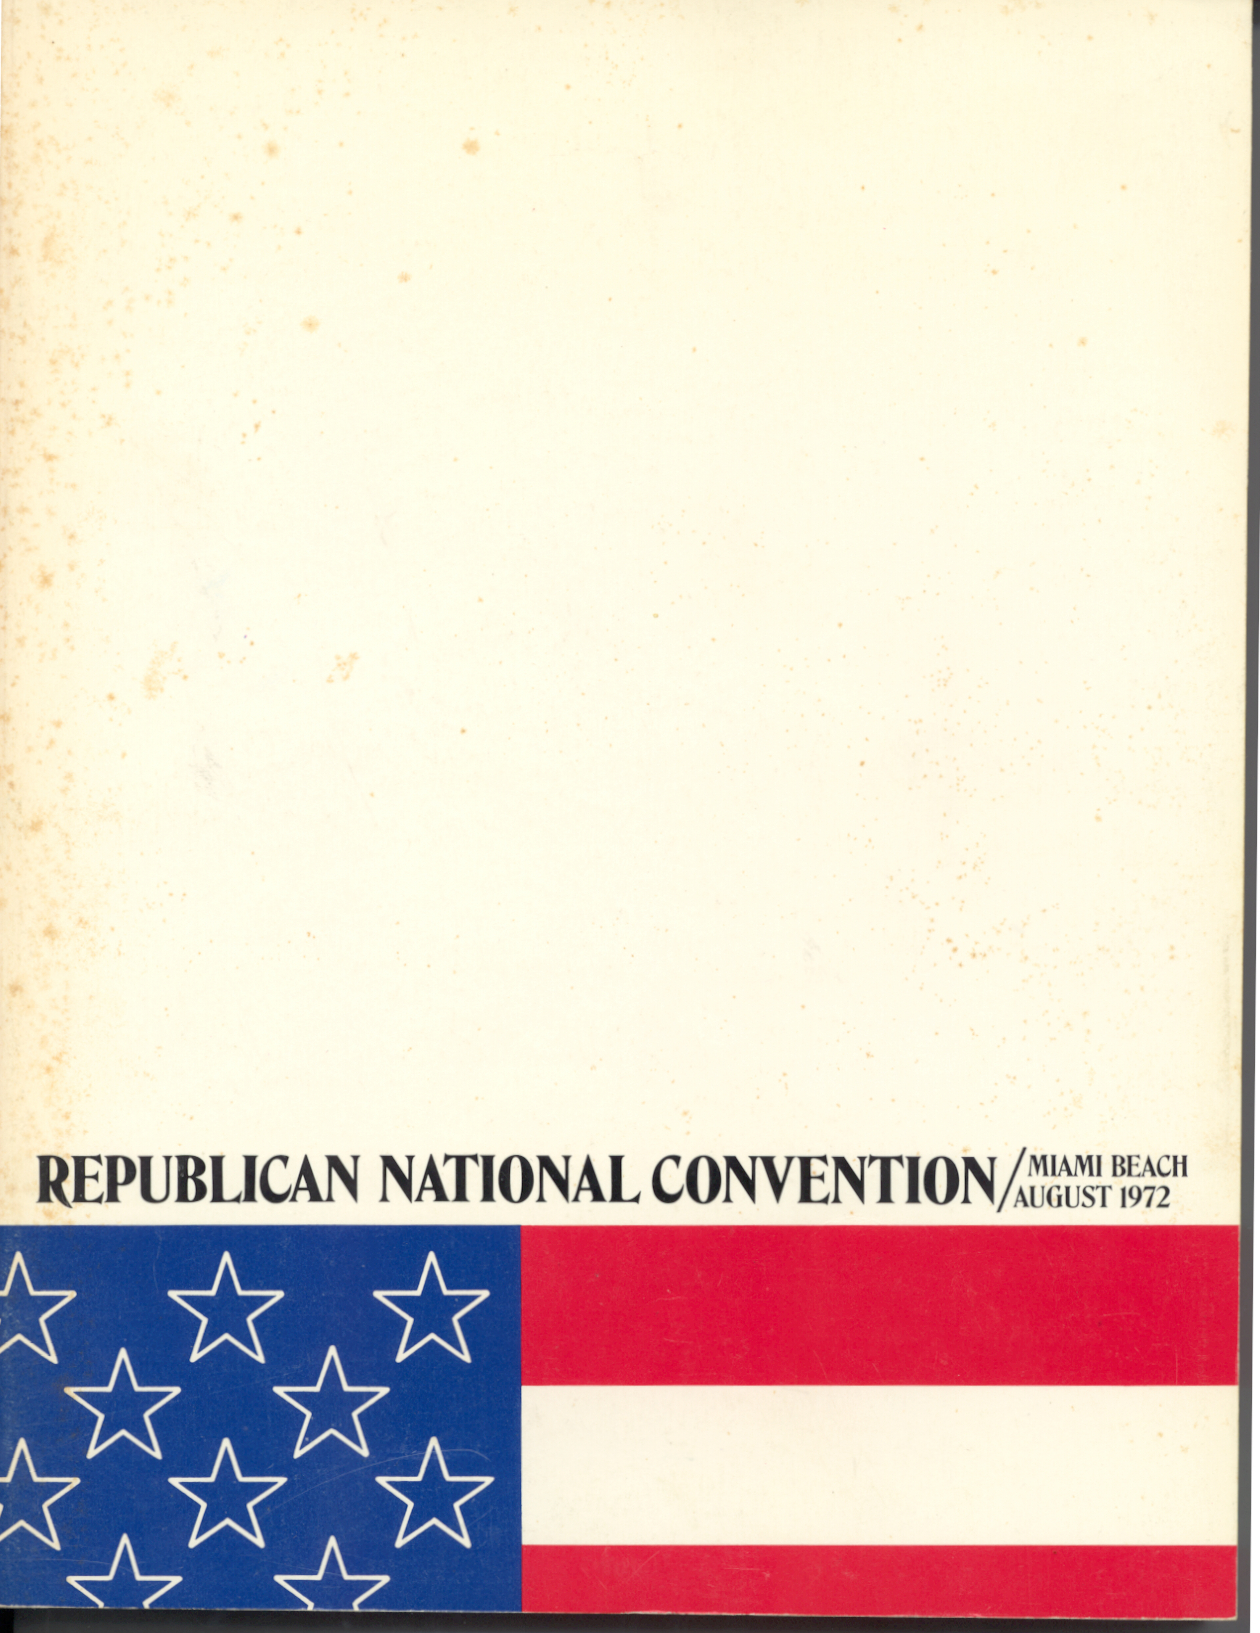 1972 Official Program